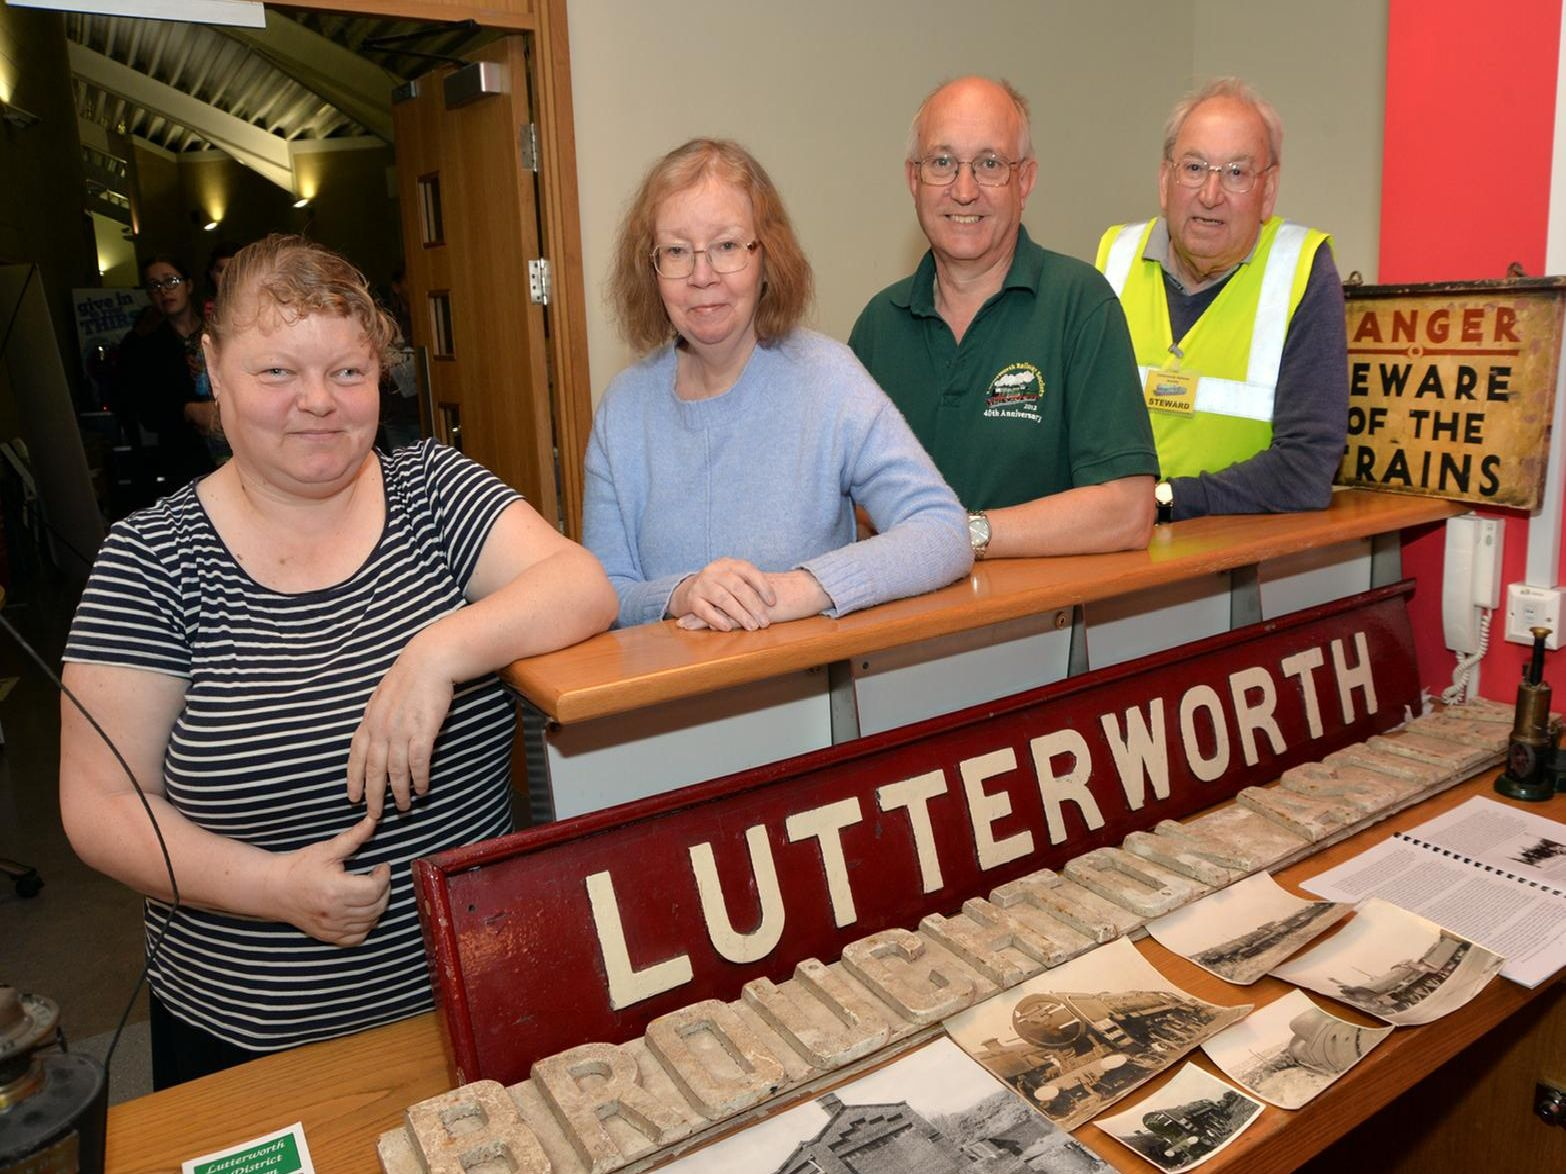 Kerry Girling and Alison Smith of Lutterworth Museum with David Hanger secretary of Lutterworth Railway Society and organiser Stuart Hammond with the original Lutterworth Railway Station sign. PICTURE: ANDREW CARPENTER